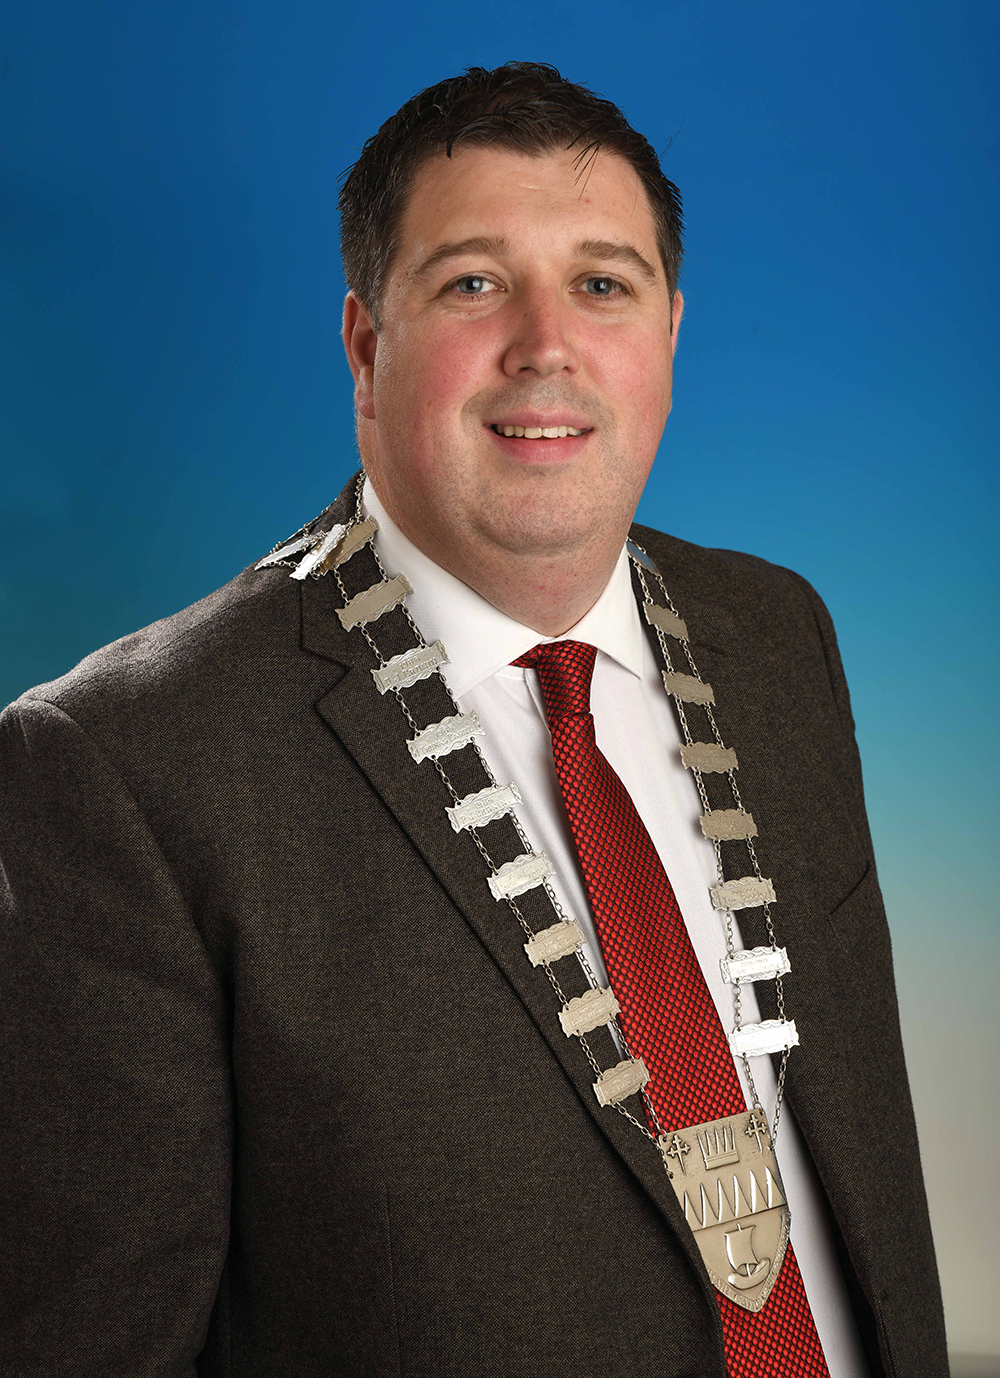 Kelleher, Niall (Cathaoirleach of Kerry County Council)